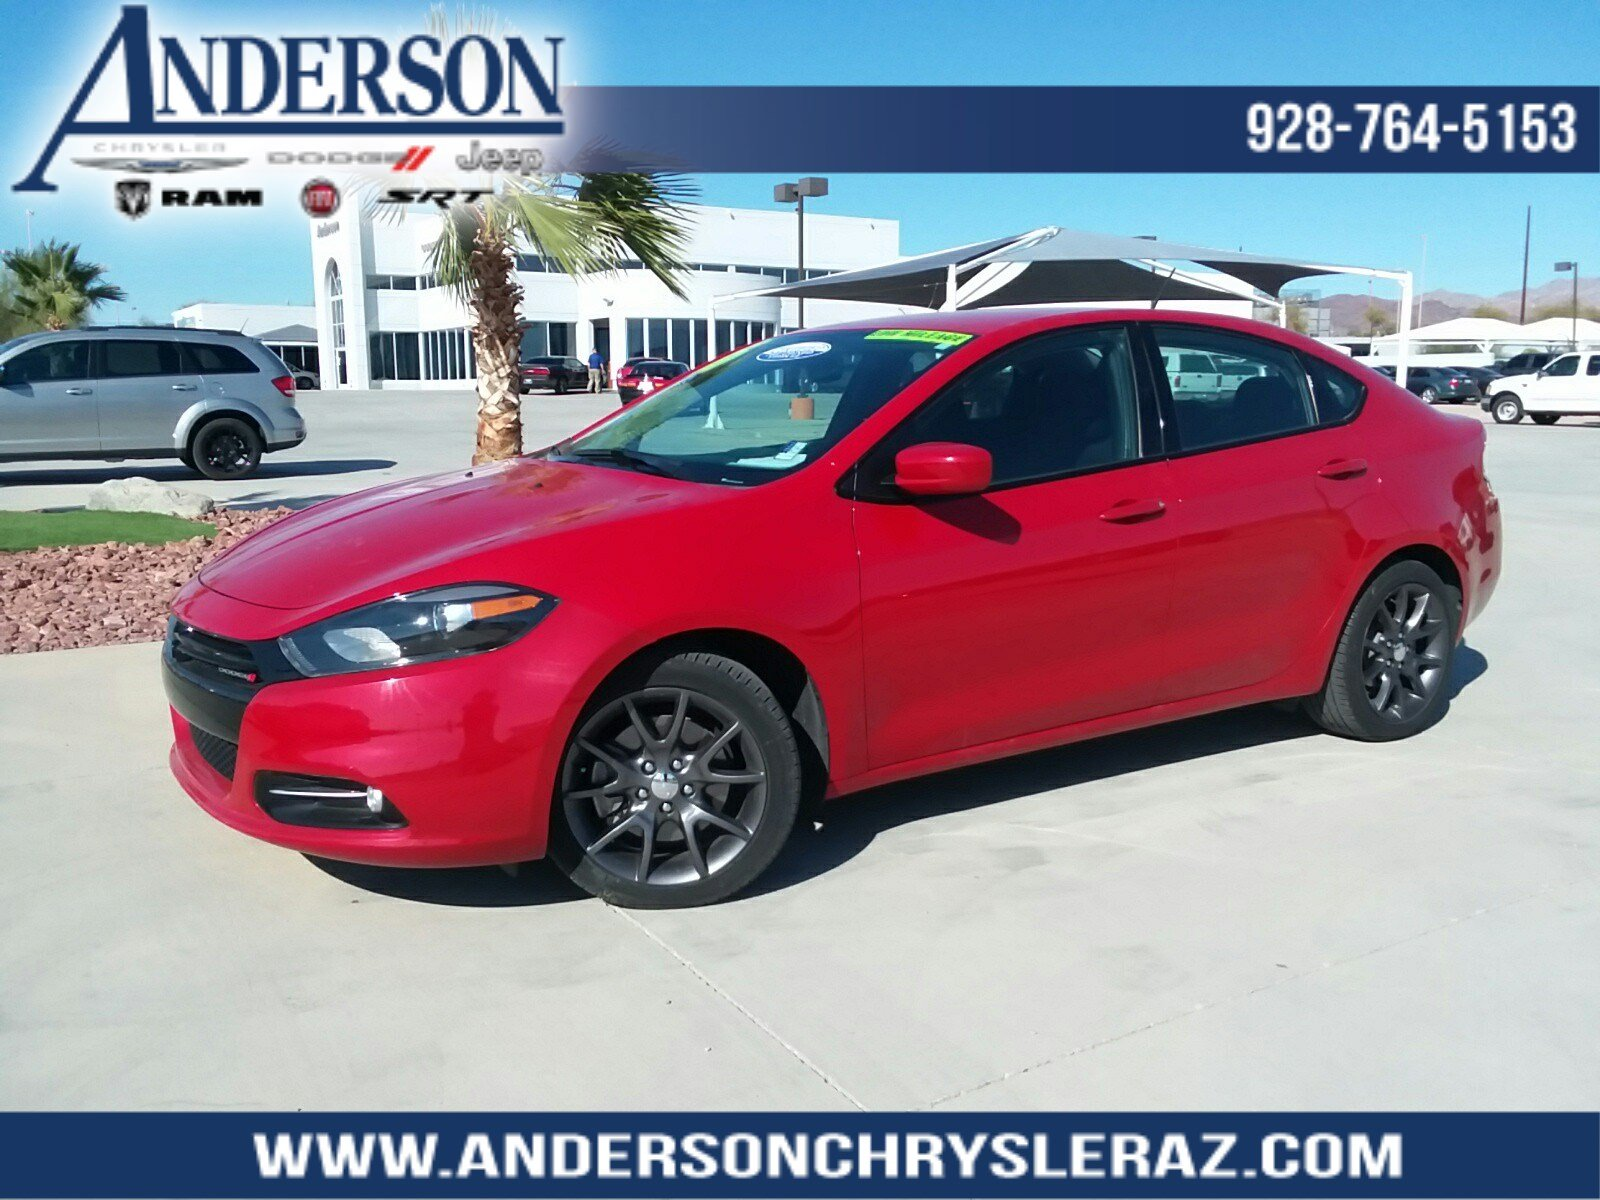 30 Cool dodge dart lease – otoriyoce